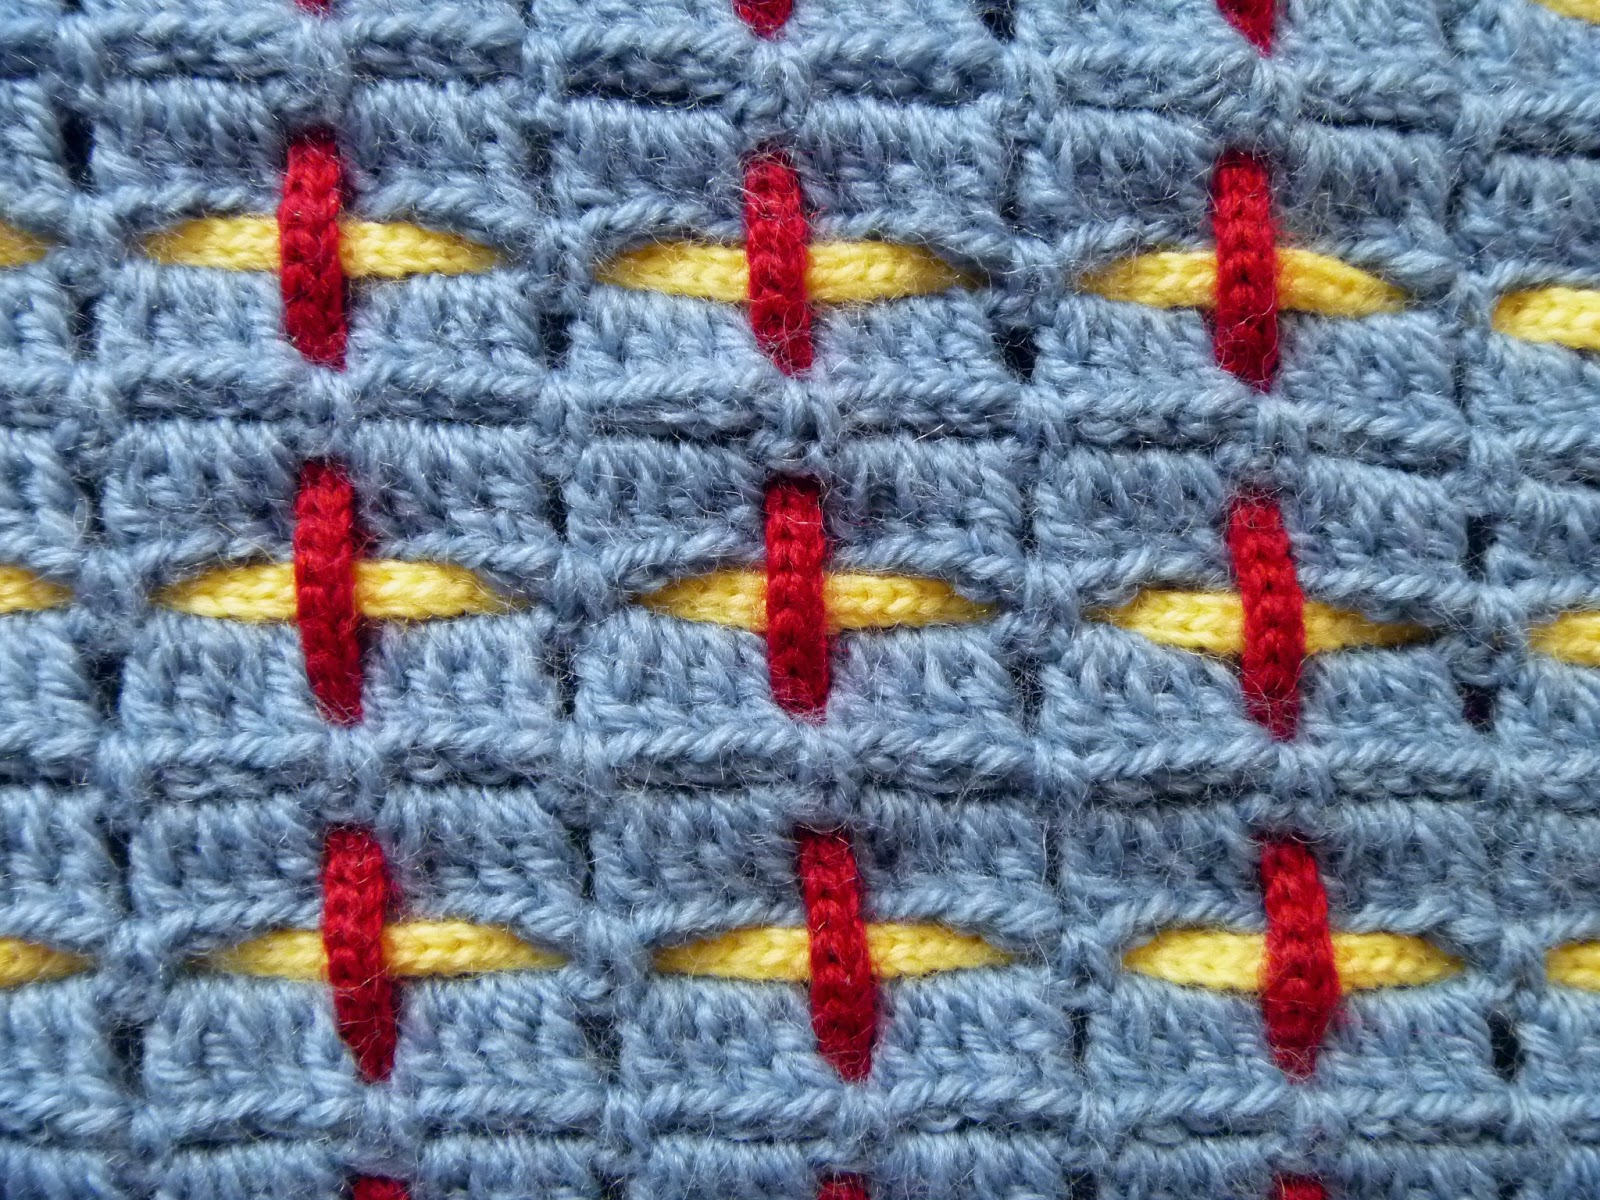 Stitch Story: So Many possibilities for the Woven Placemat!